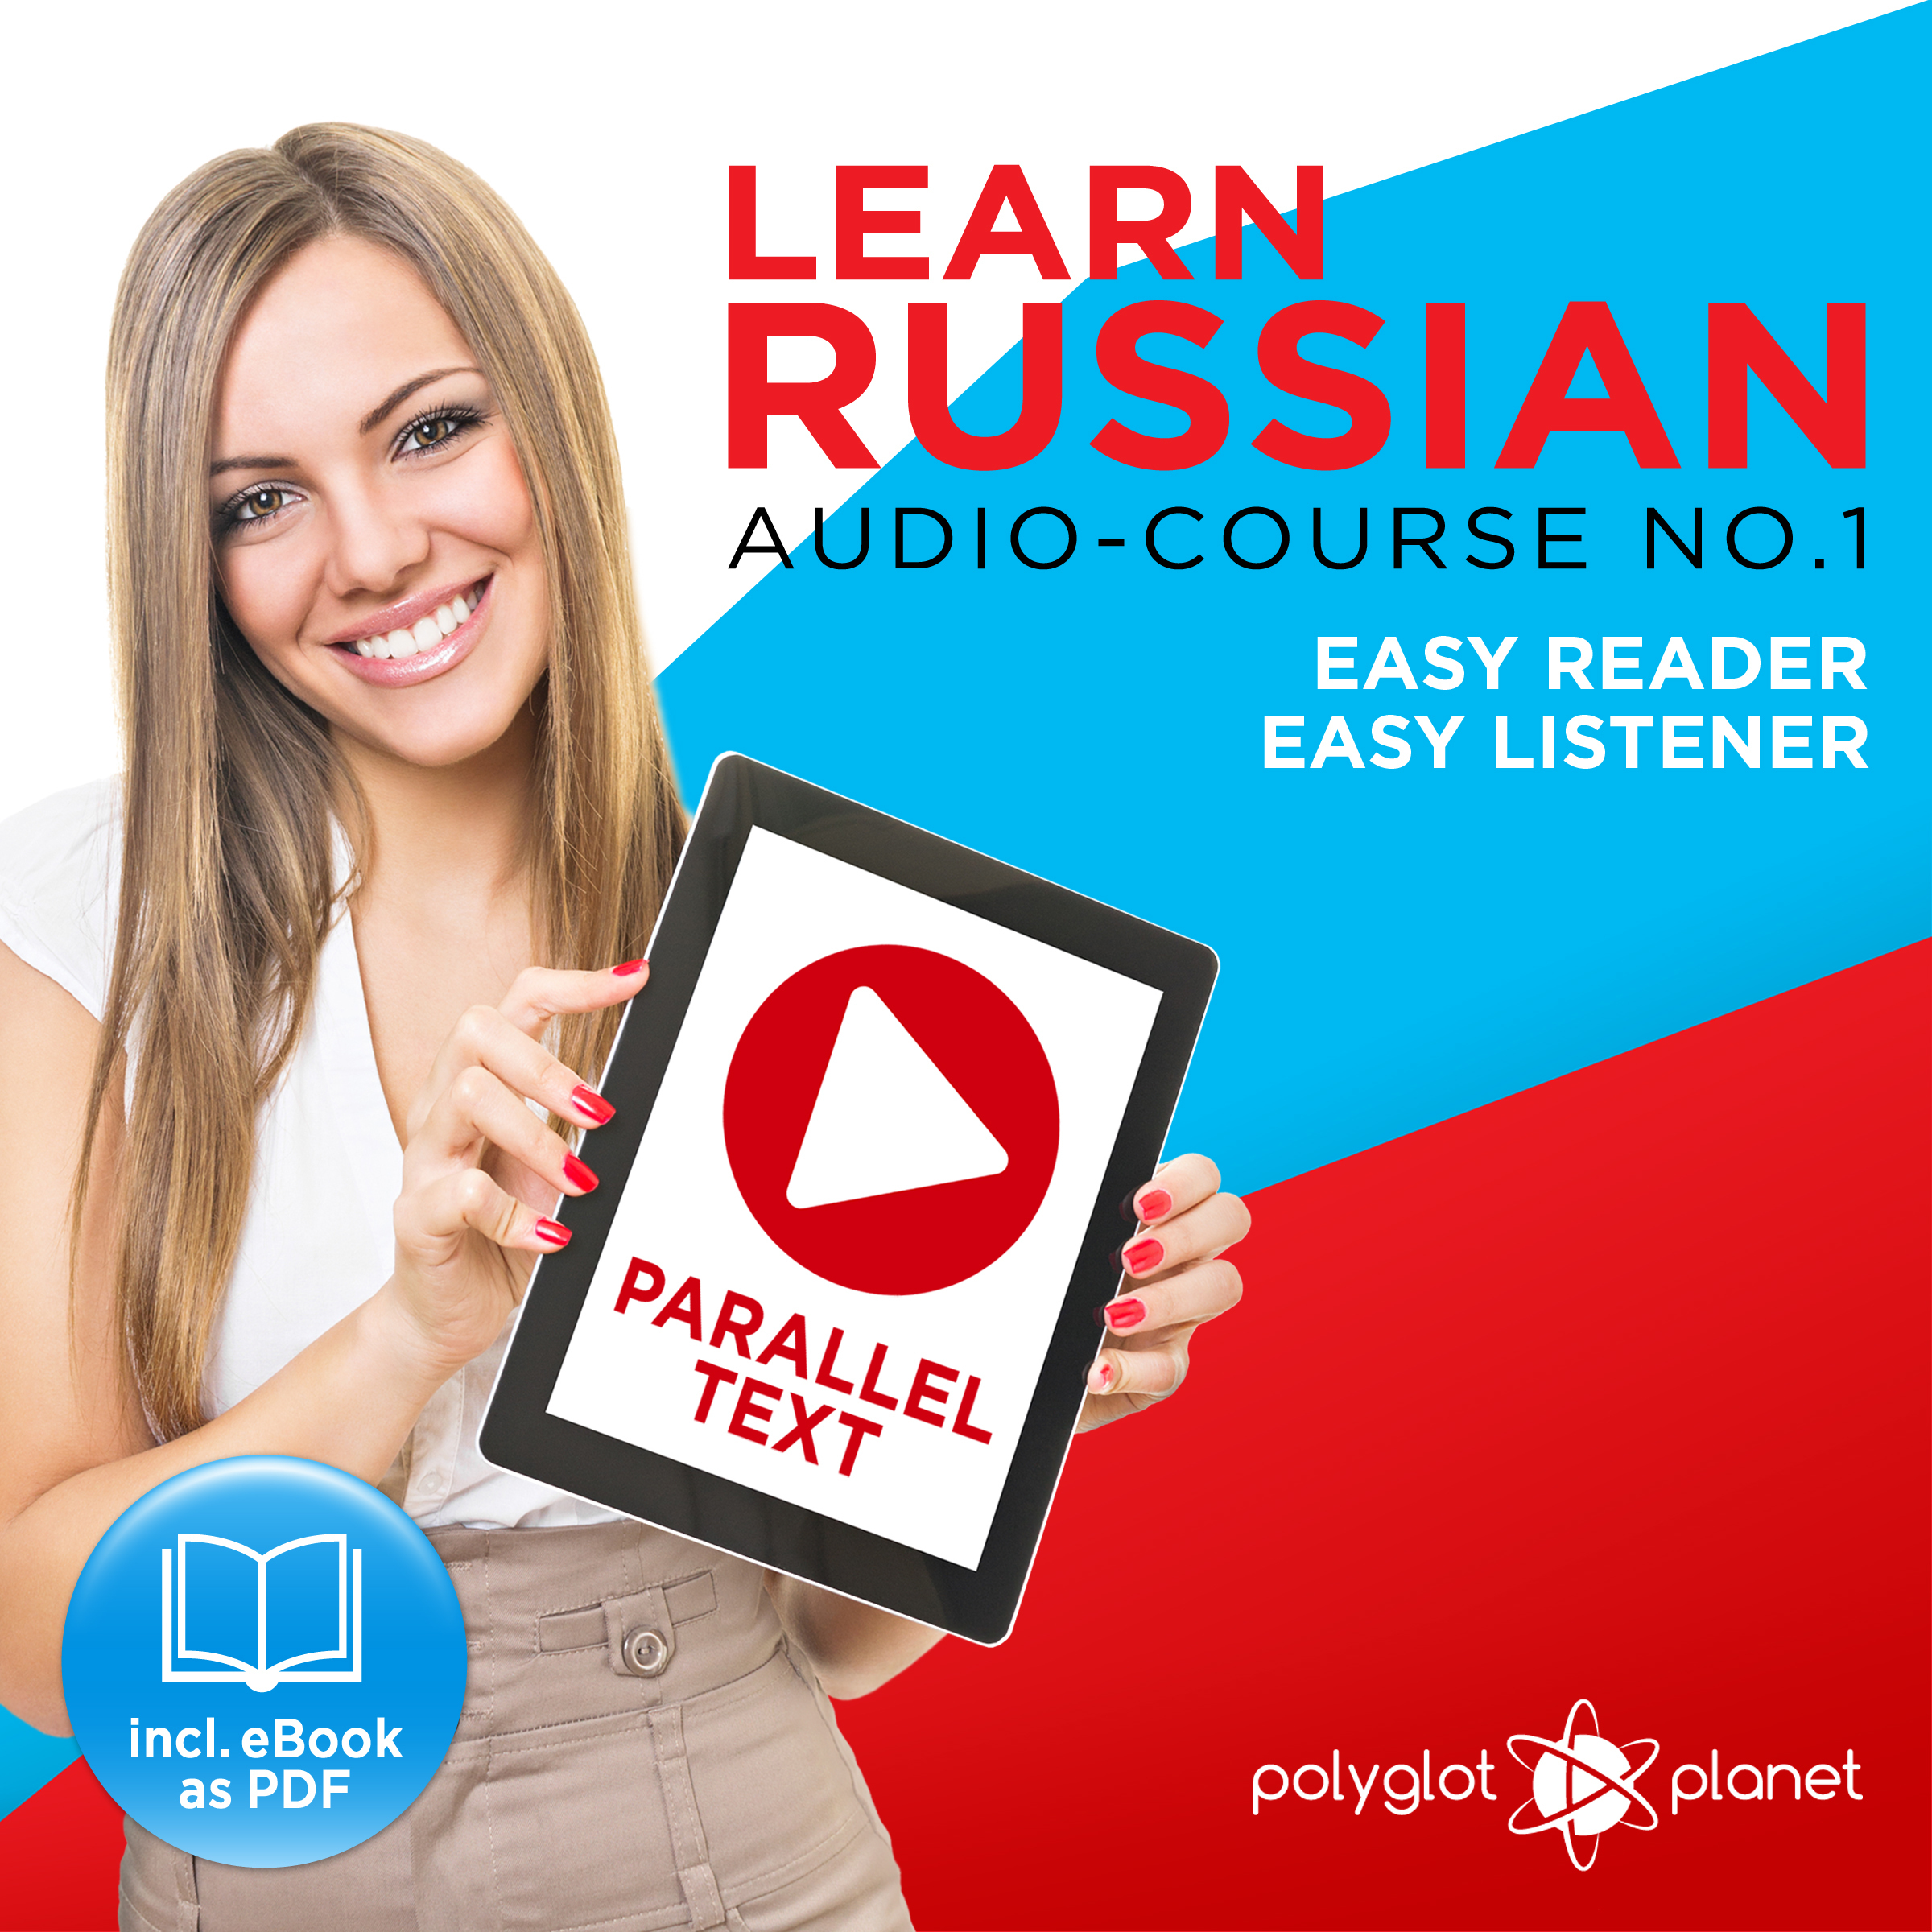 Printable Learn Russian - Easy Reader - Easy Listener - Parallel Text Audio Course No. 1 - The Russian Easy Reader - Easy Audio Learning Course Audiobook Cover Art